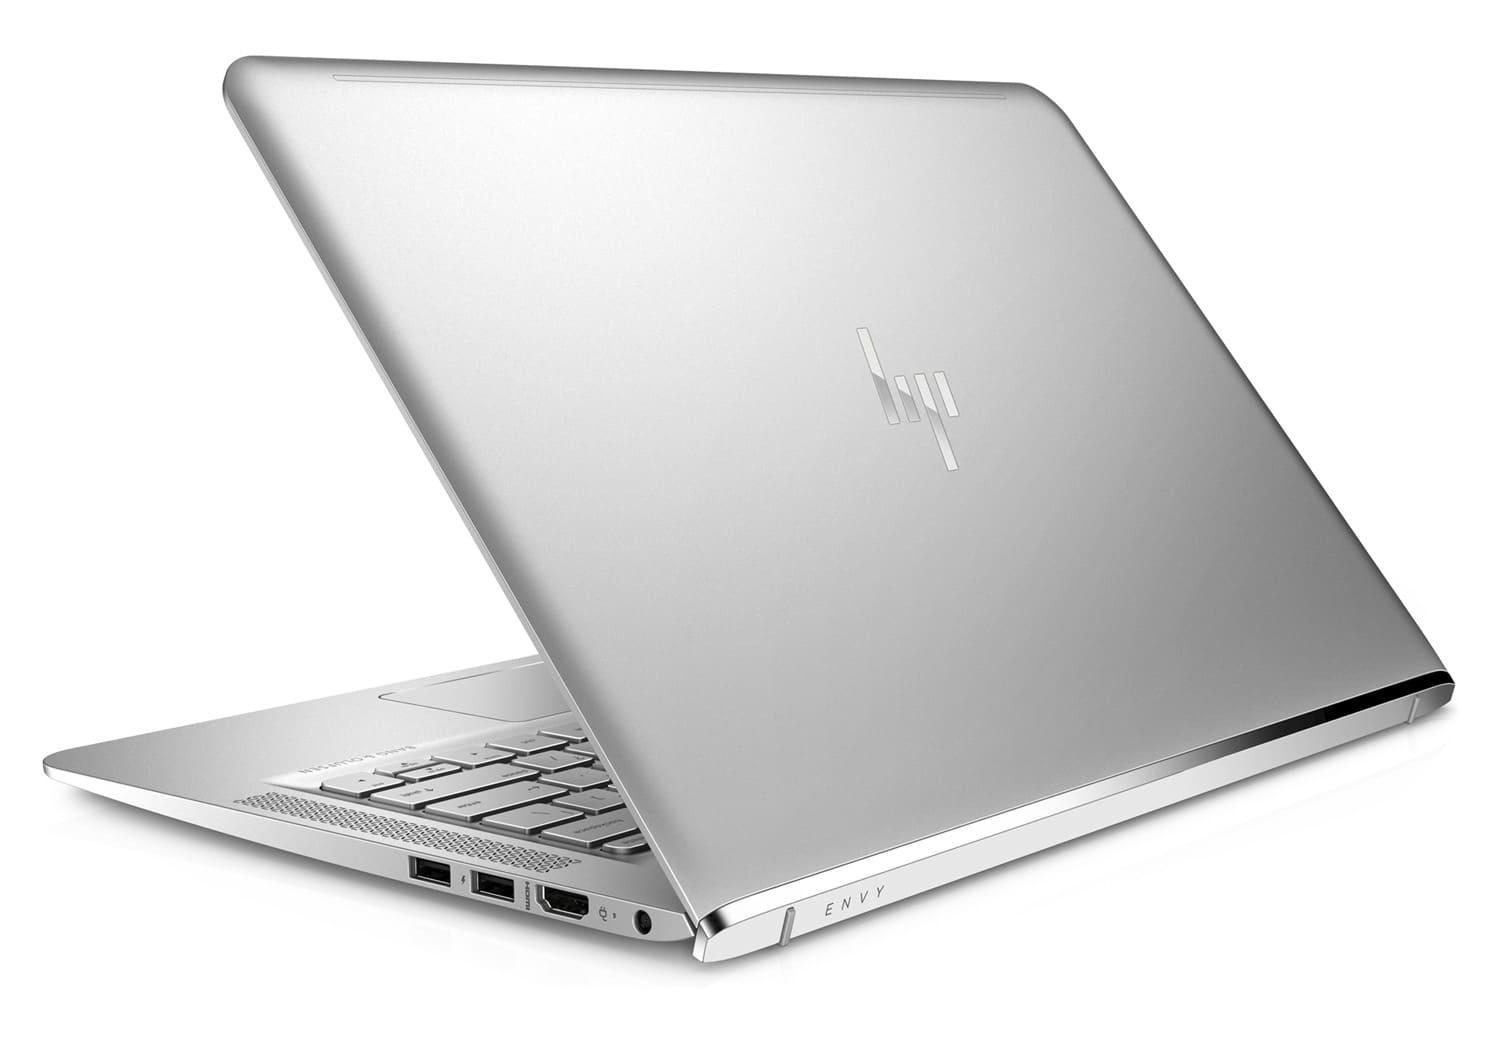 HP Envy 13-ab030nf, Ultrabook 13 pouces IPS SSD 512 Go Kaby Lake 8 Go 1099€